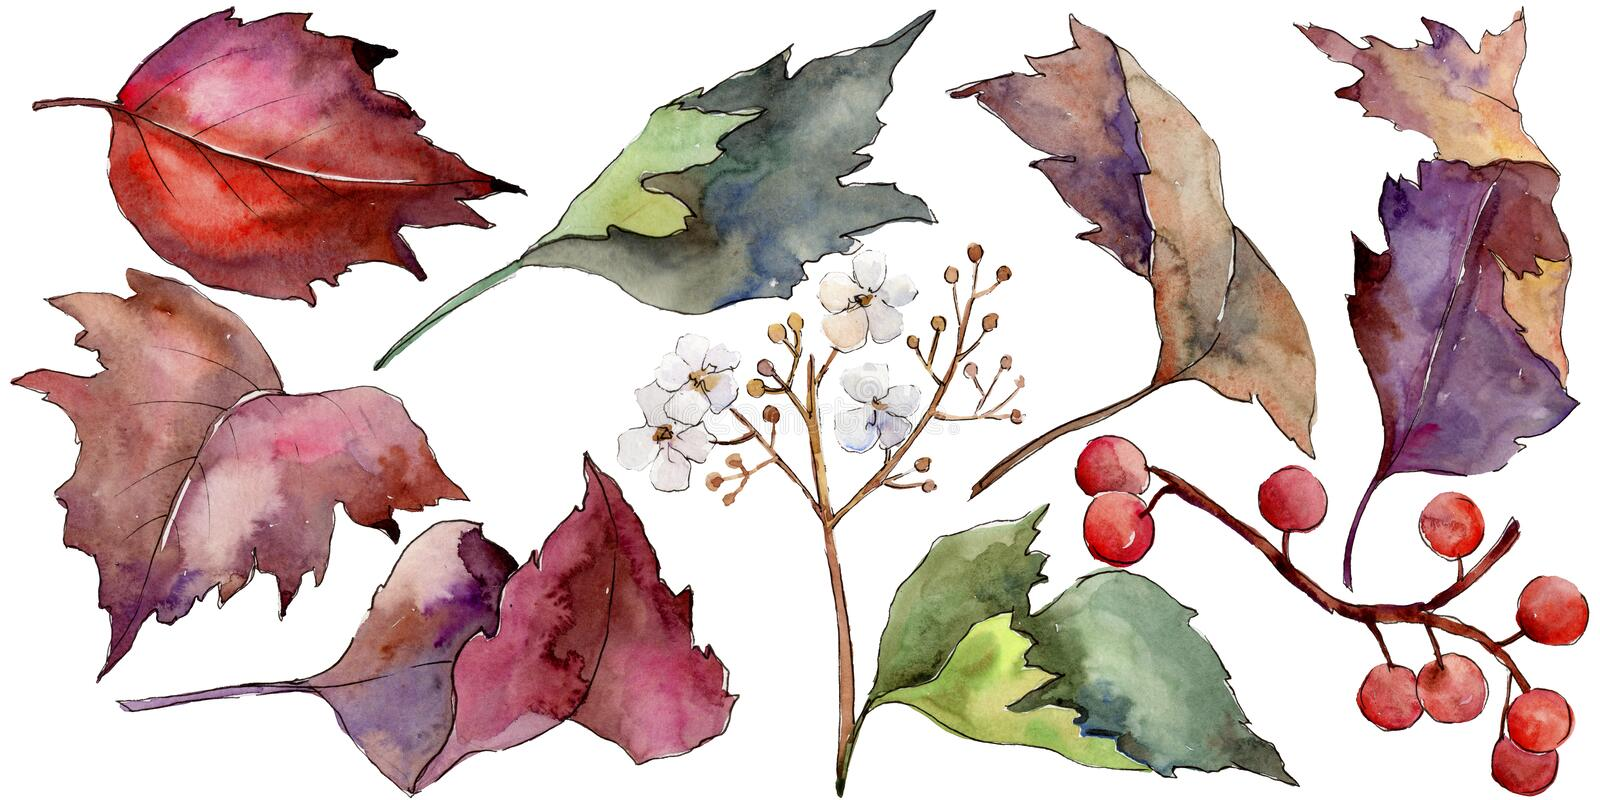 Feuille colorée de viburnum d'aquarelle Feuillage floral de jardin botanique d'usine de feuille Élément d'isolement d'illustratio illustration de vecteur